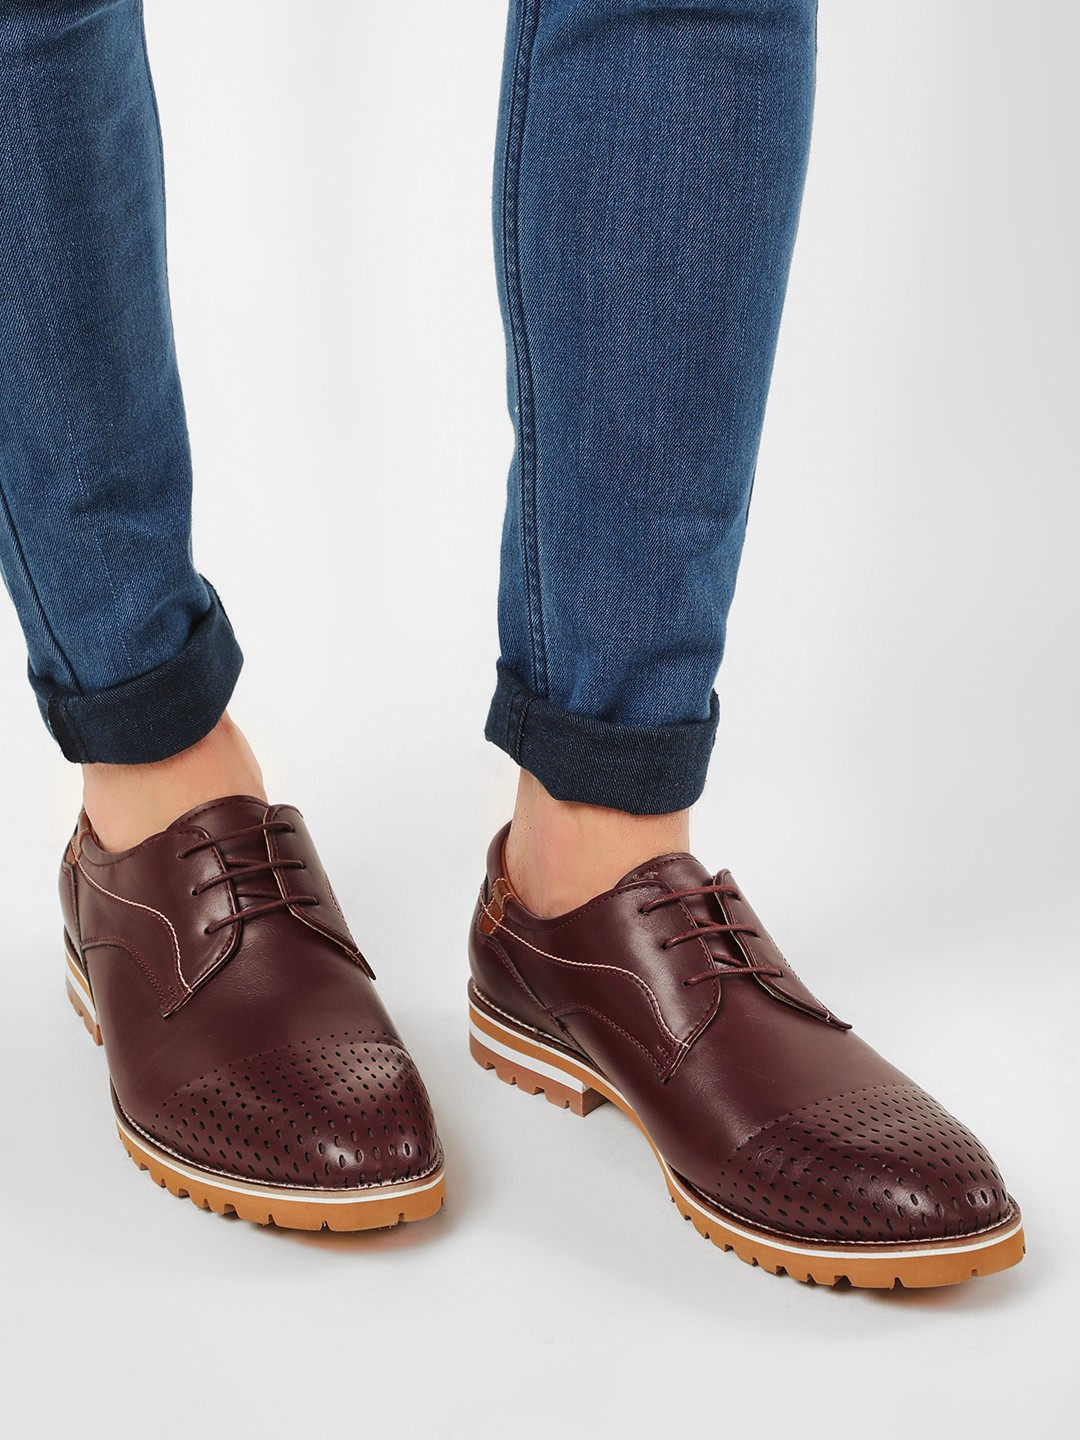 Rodolfo Darrell Brown Cleated Sole Derby Shoes 1